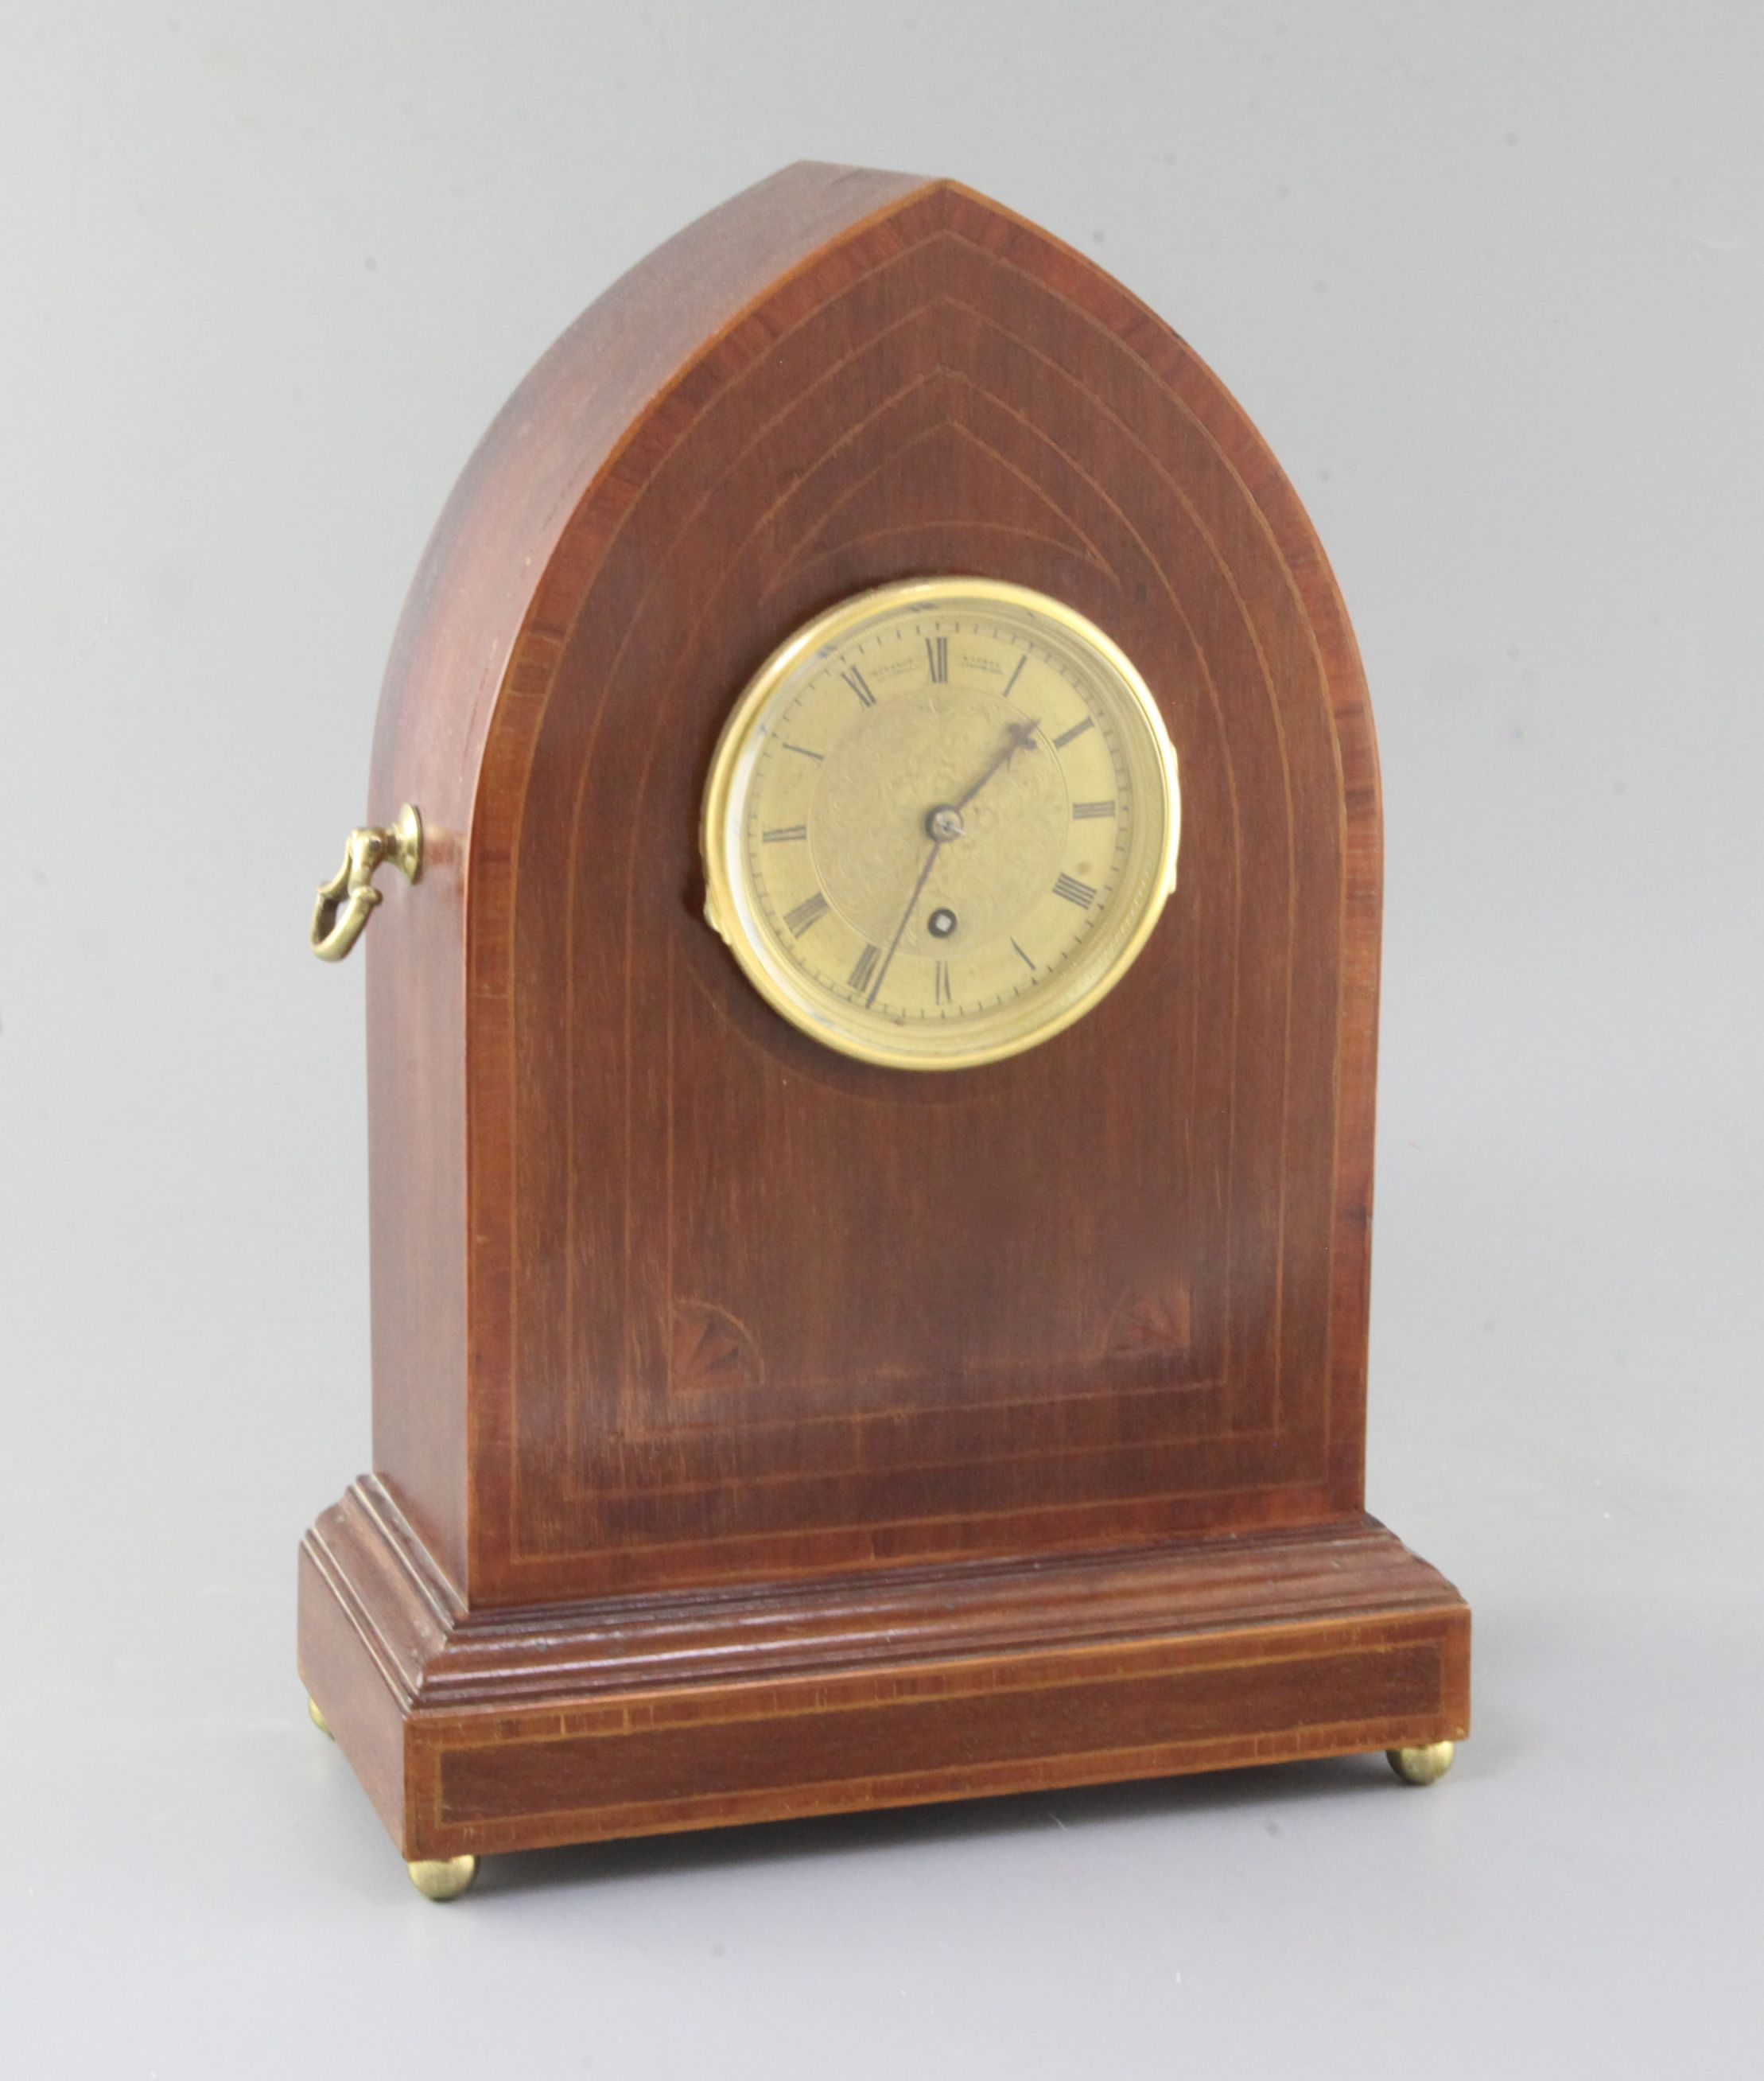 Lot 34 - Barraud & Lunds. A Victorian gilt faced timepiece movement, number 2929, housed in an Edwardian